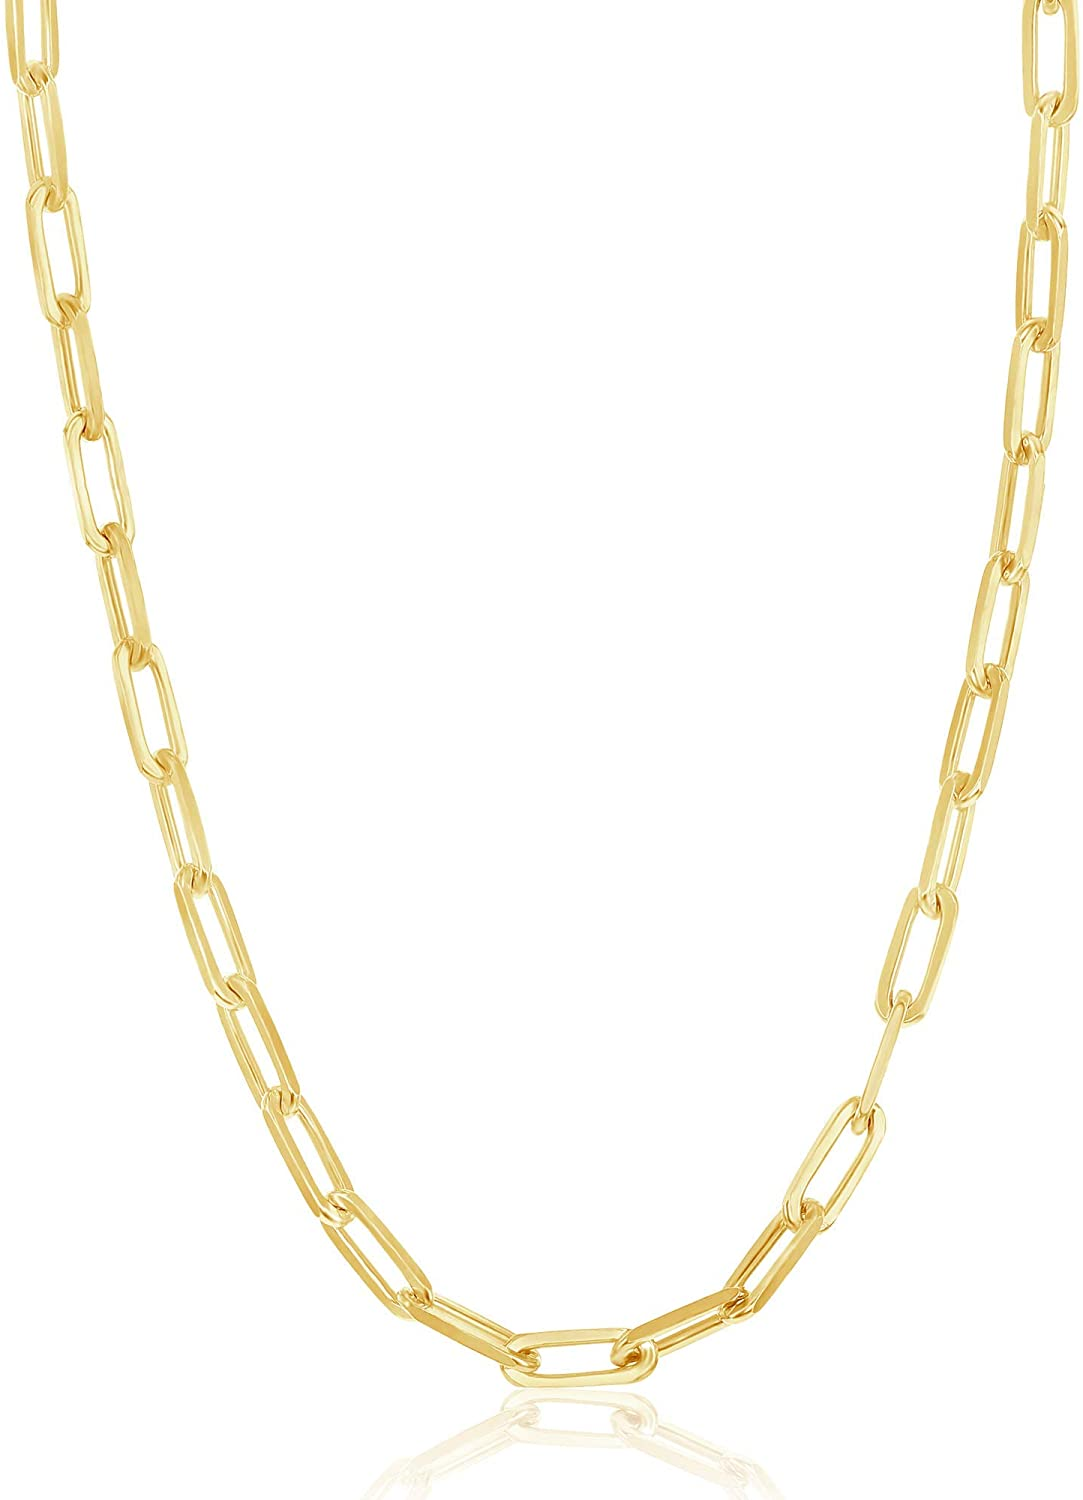 Paperclip Chain Popular products Bombing free shipping Link Necklace Sterling Rhodiu 14k Silver or Gold